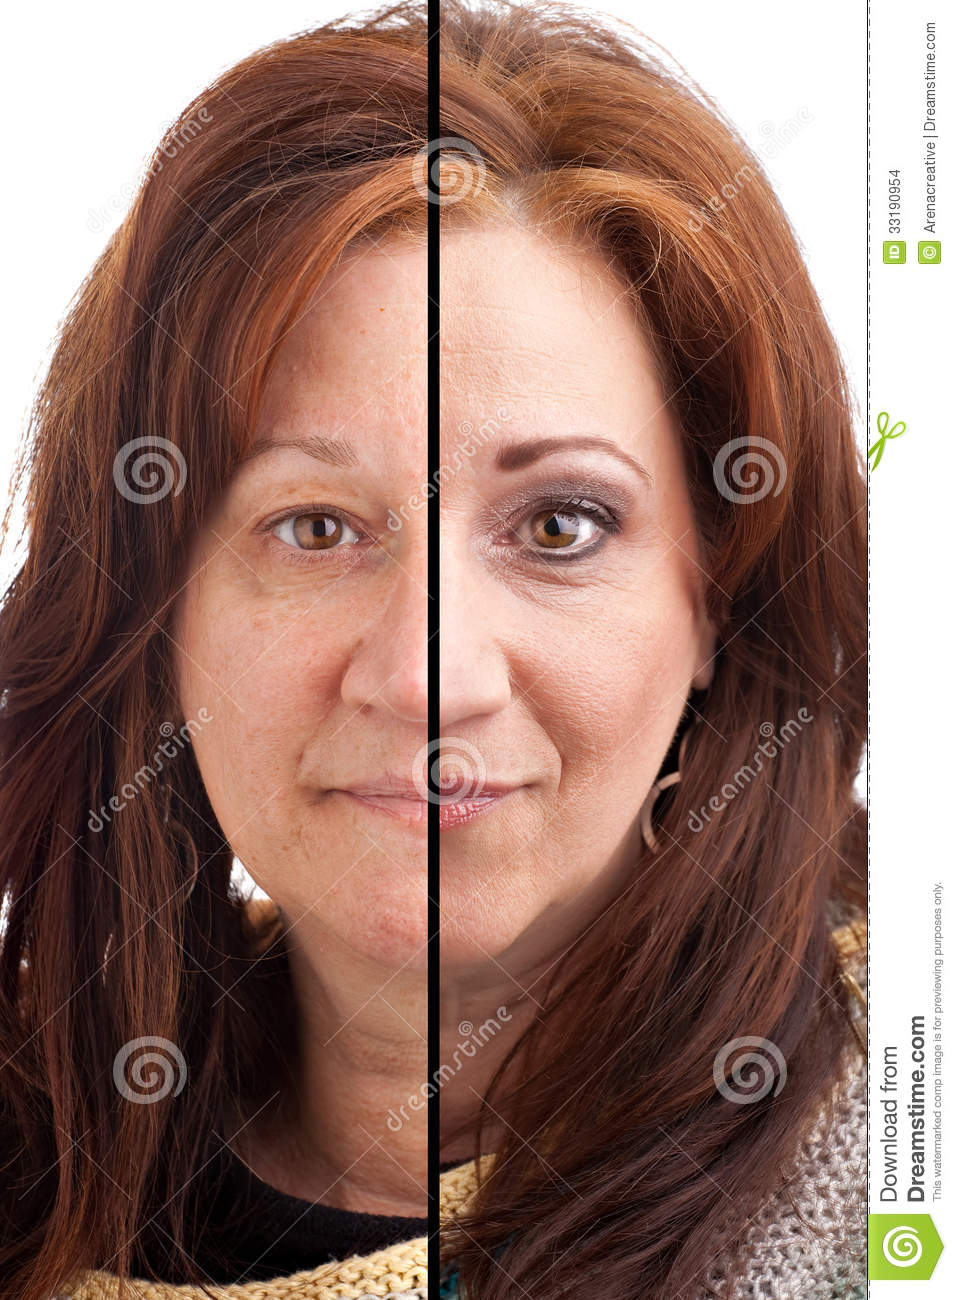 Makeup Before And After Stock Photo. Image Of Half Makeup - 33190954